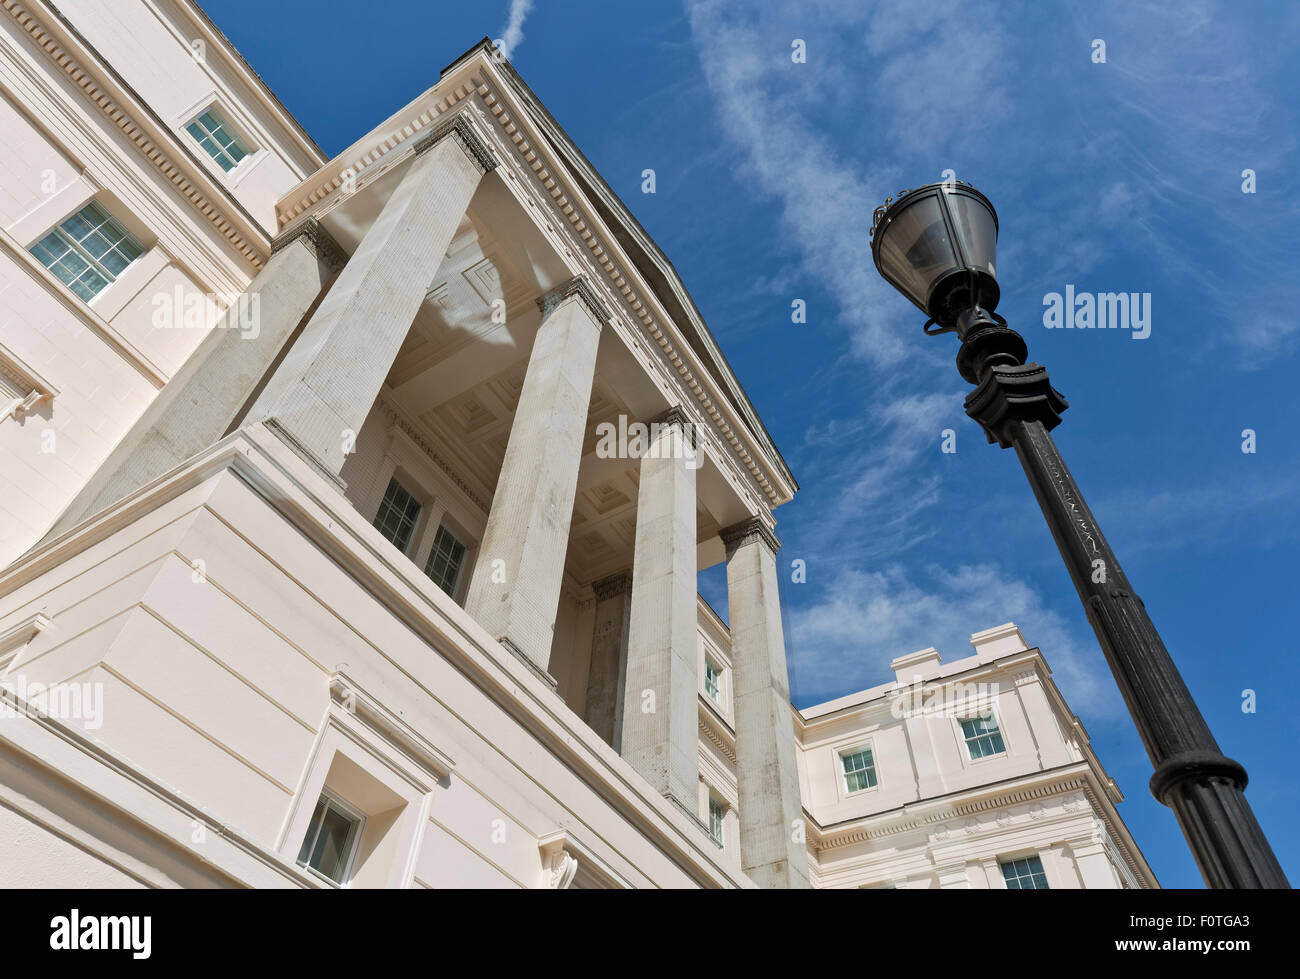 Lanesborough Hotel, colonnaded portico. Lanesborough Hotel, London, United Kingdom. Architect: Reardon Smith Architects - Stock Image